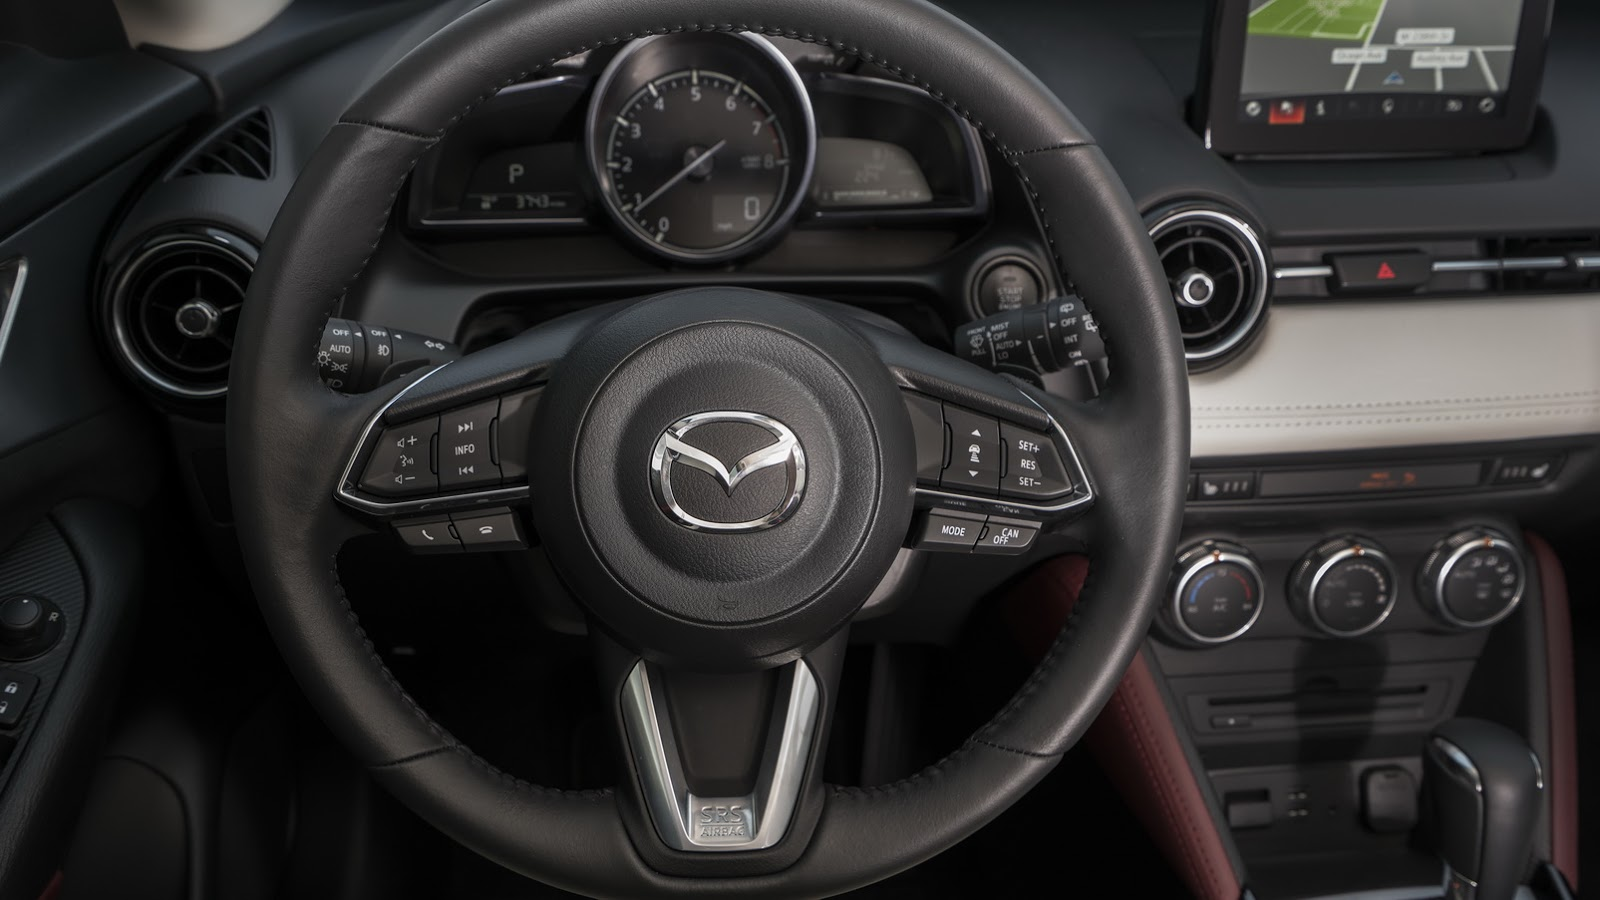 Mazda CX-3: Dynamic little CUV gets tech, refinement updates